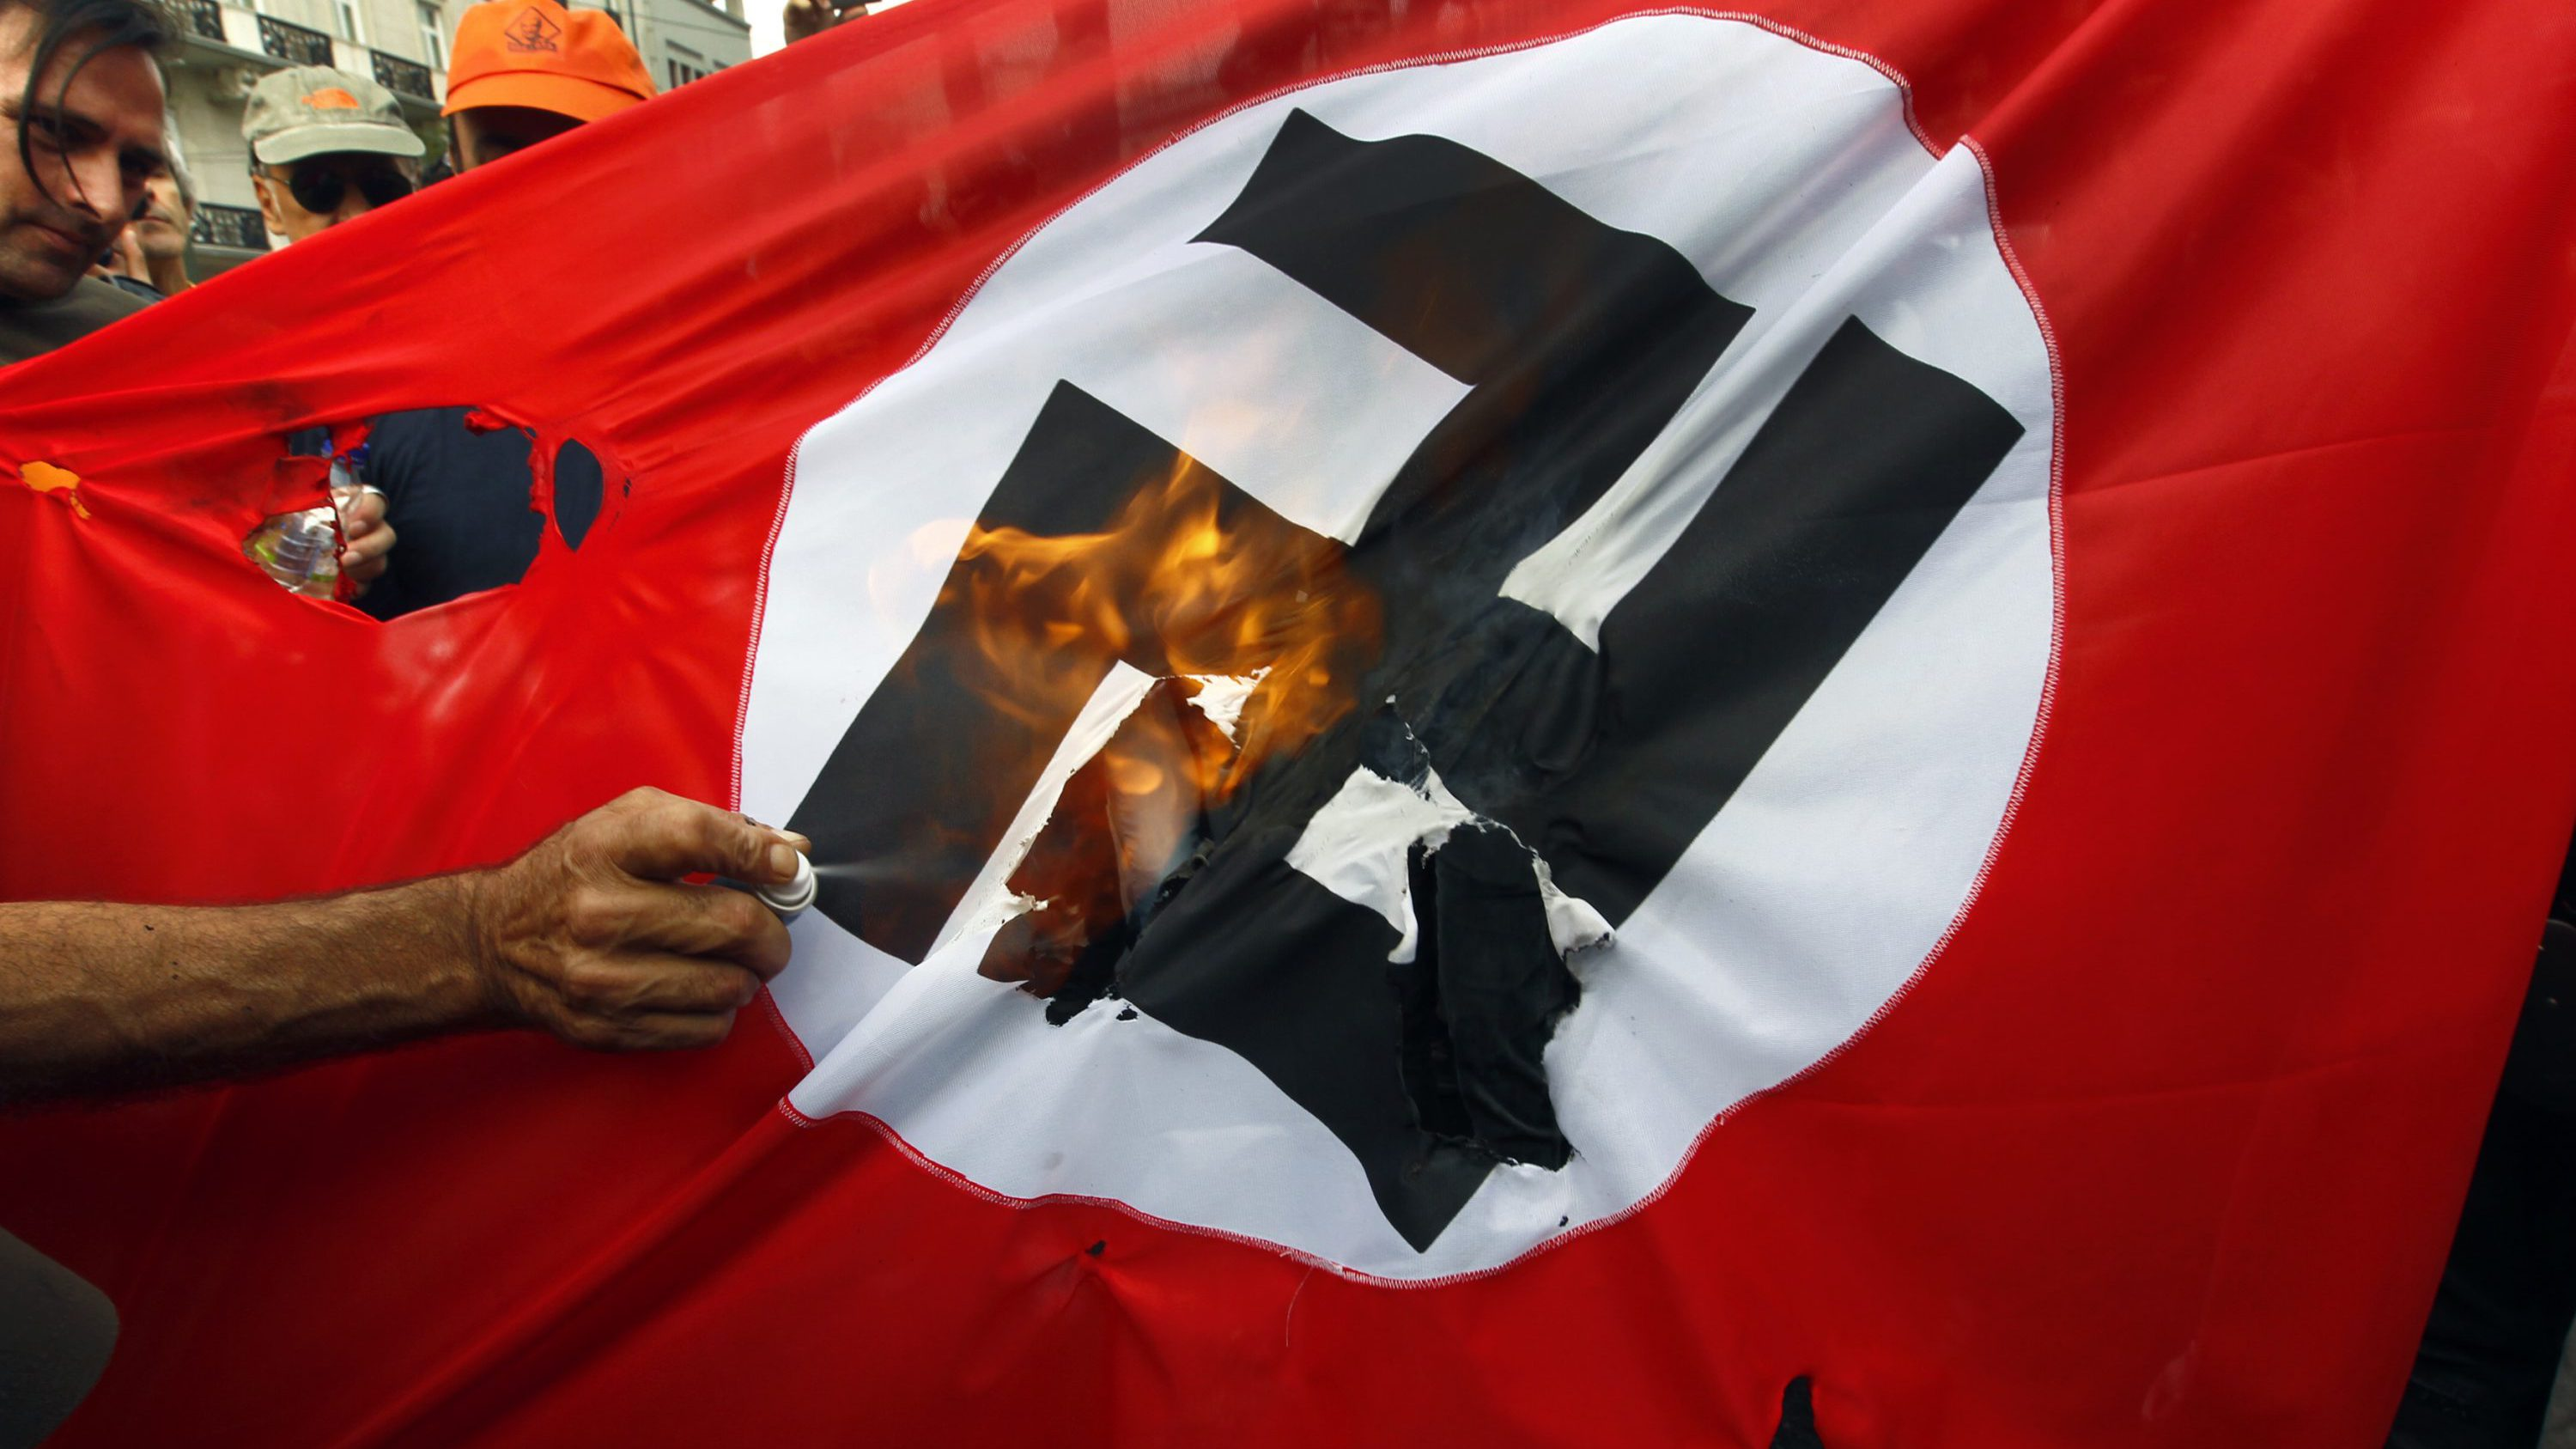 Demonstrators burn a flag emblazoned with a swastika during a demonstration against the visit of German Chancellor Angela Merkel in central Athens, October 9, 2012. Germany's Angela Merkel arrived in Greece on her first visit since Europe's debt crisis erupted here three years ago, braving protests to deliver a message of support - but no new money - to a nation hammered by recession and fighting to stay in the euro.